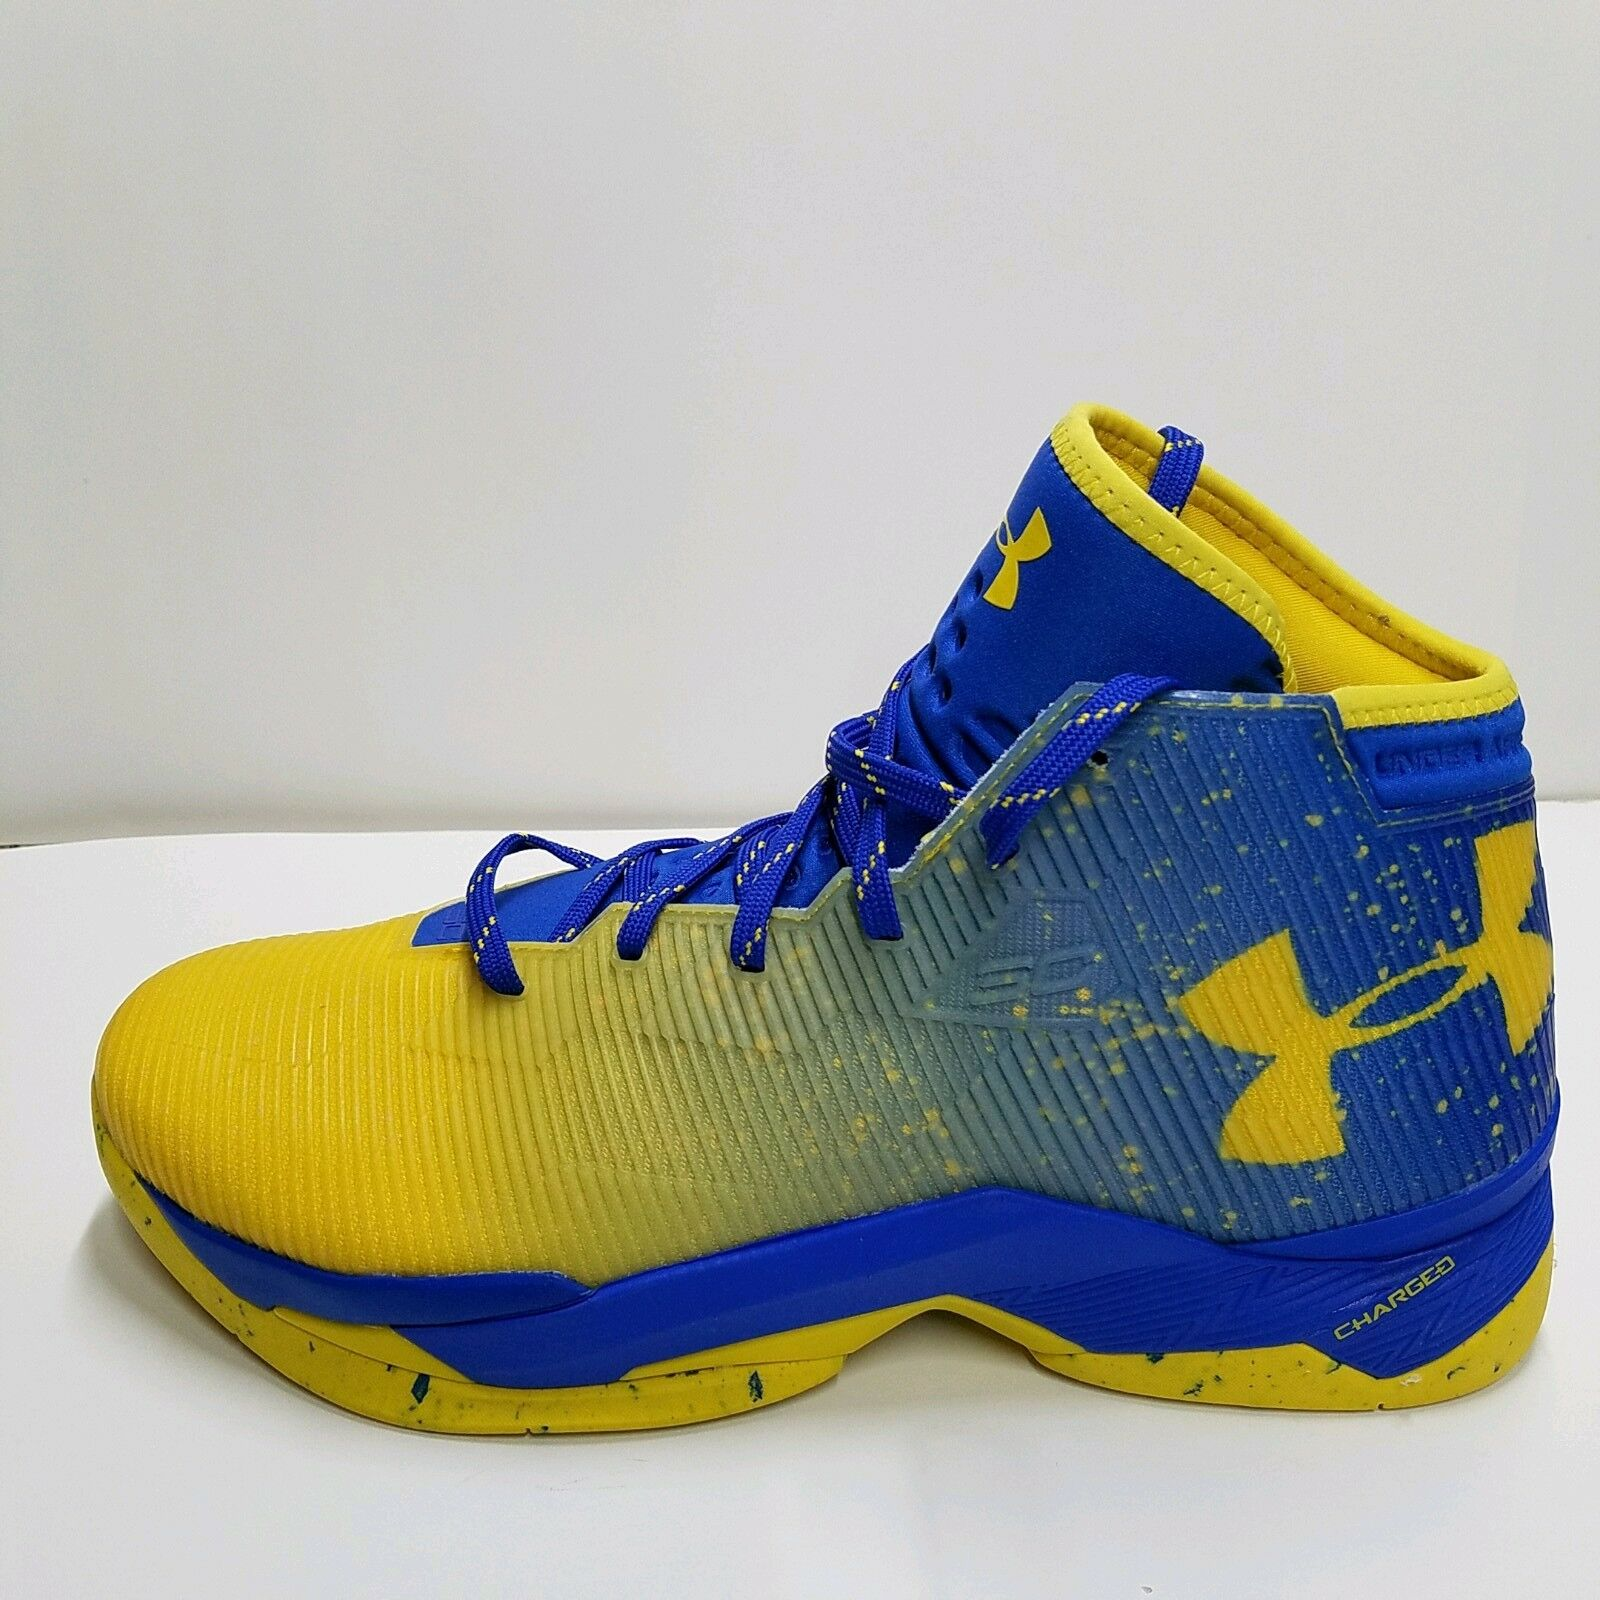 best sneakers f9144 ce22a UNDER UNDER UNDER ARMOUR CURRY 2.5 BASKETBALL schuhe MEN Dub Nation Lights  Team Royal SZ 12.5 07fa53